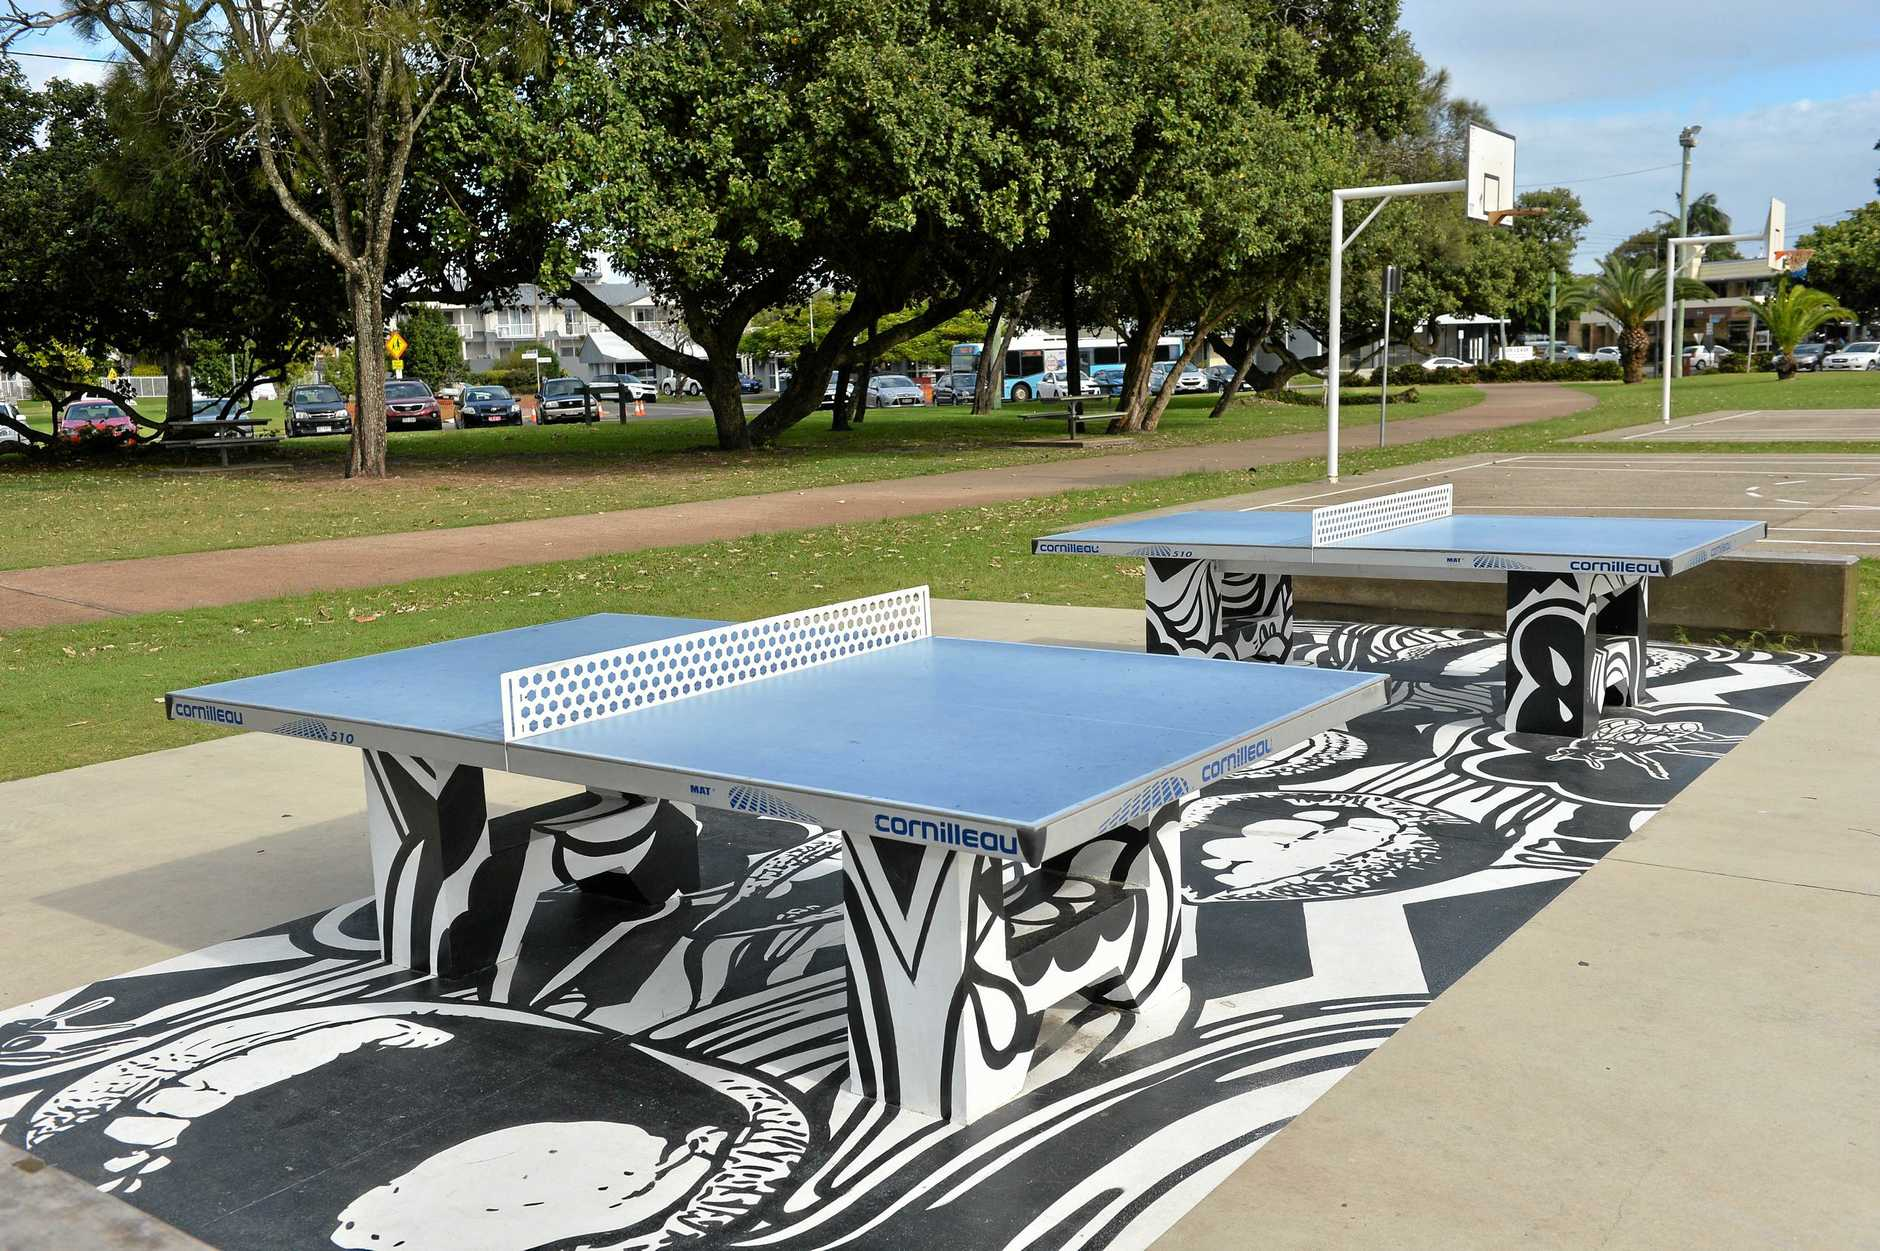 Good morning Cotton Tree. June 15, 2106. Ping pong tables at Cotton Tree Park.